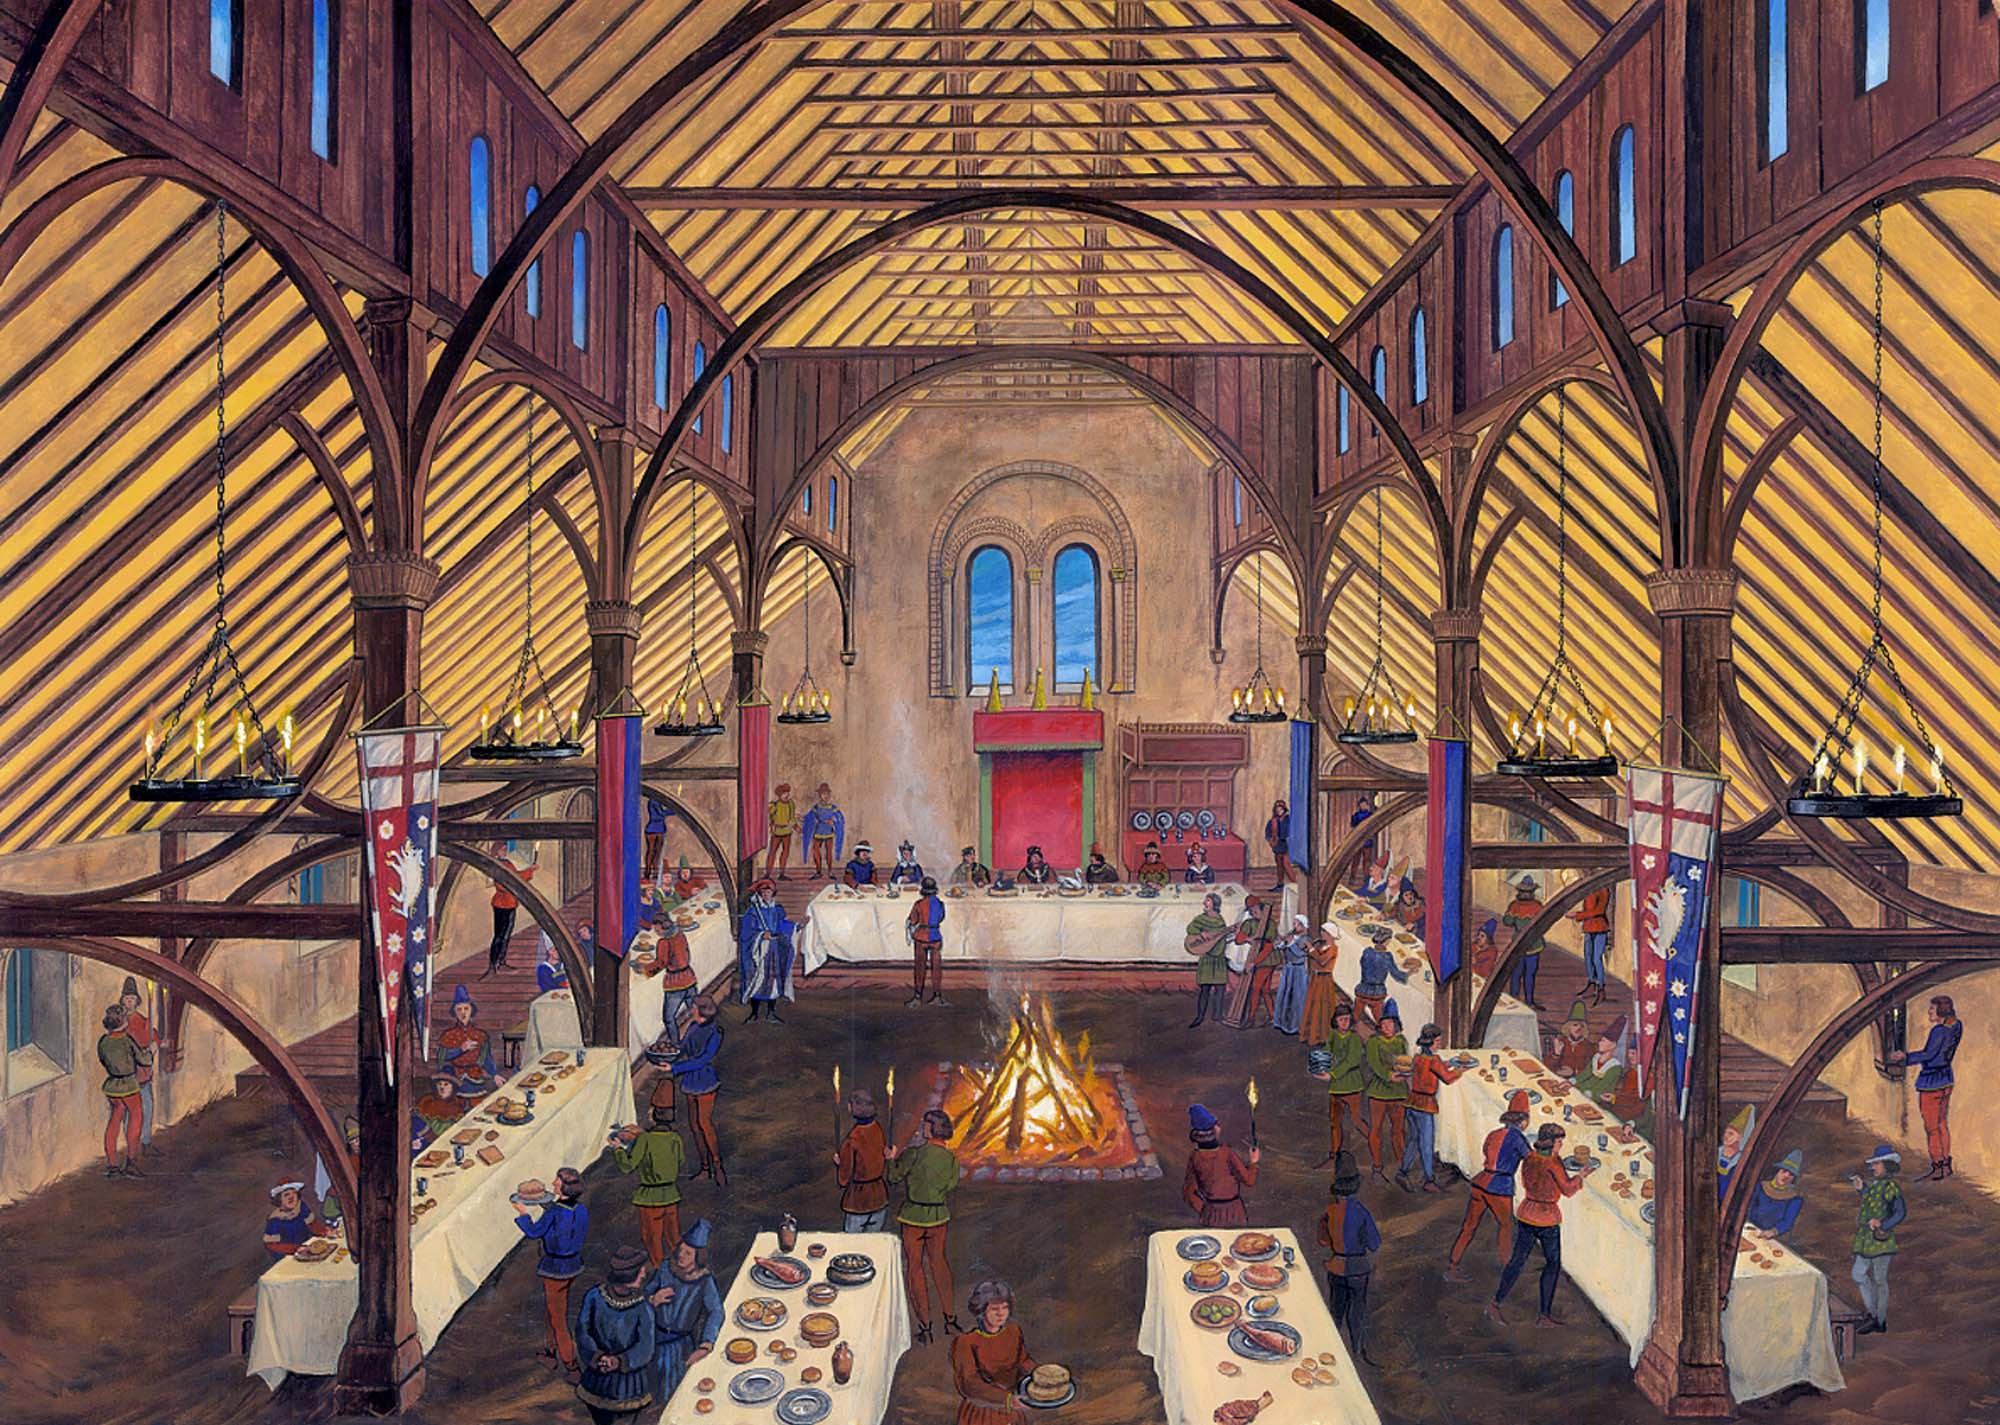 An artist's impression of a feast in the Great Hall of Leicester Castle in 1483 - Graham Sumner